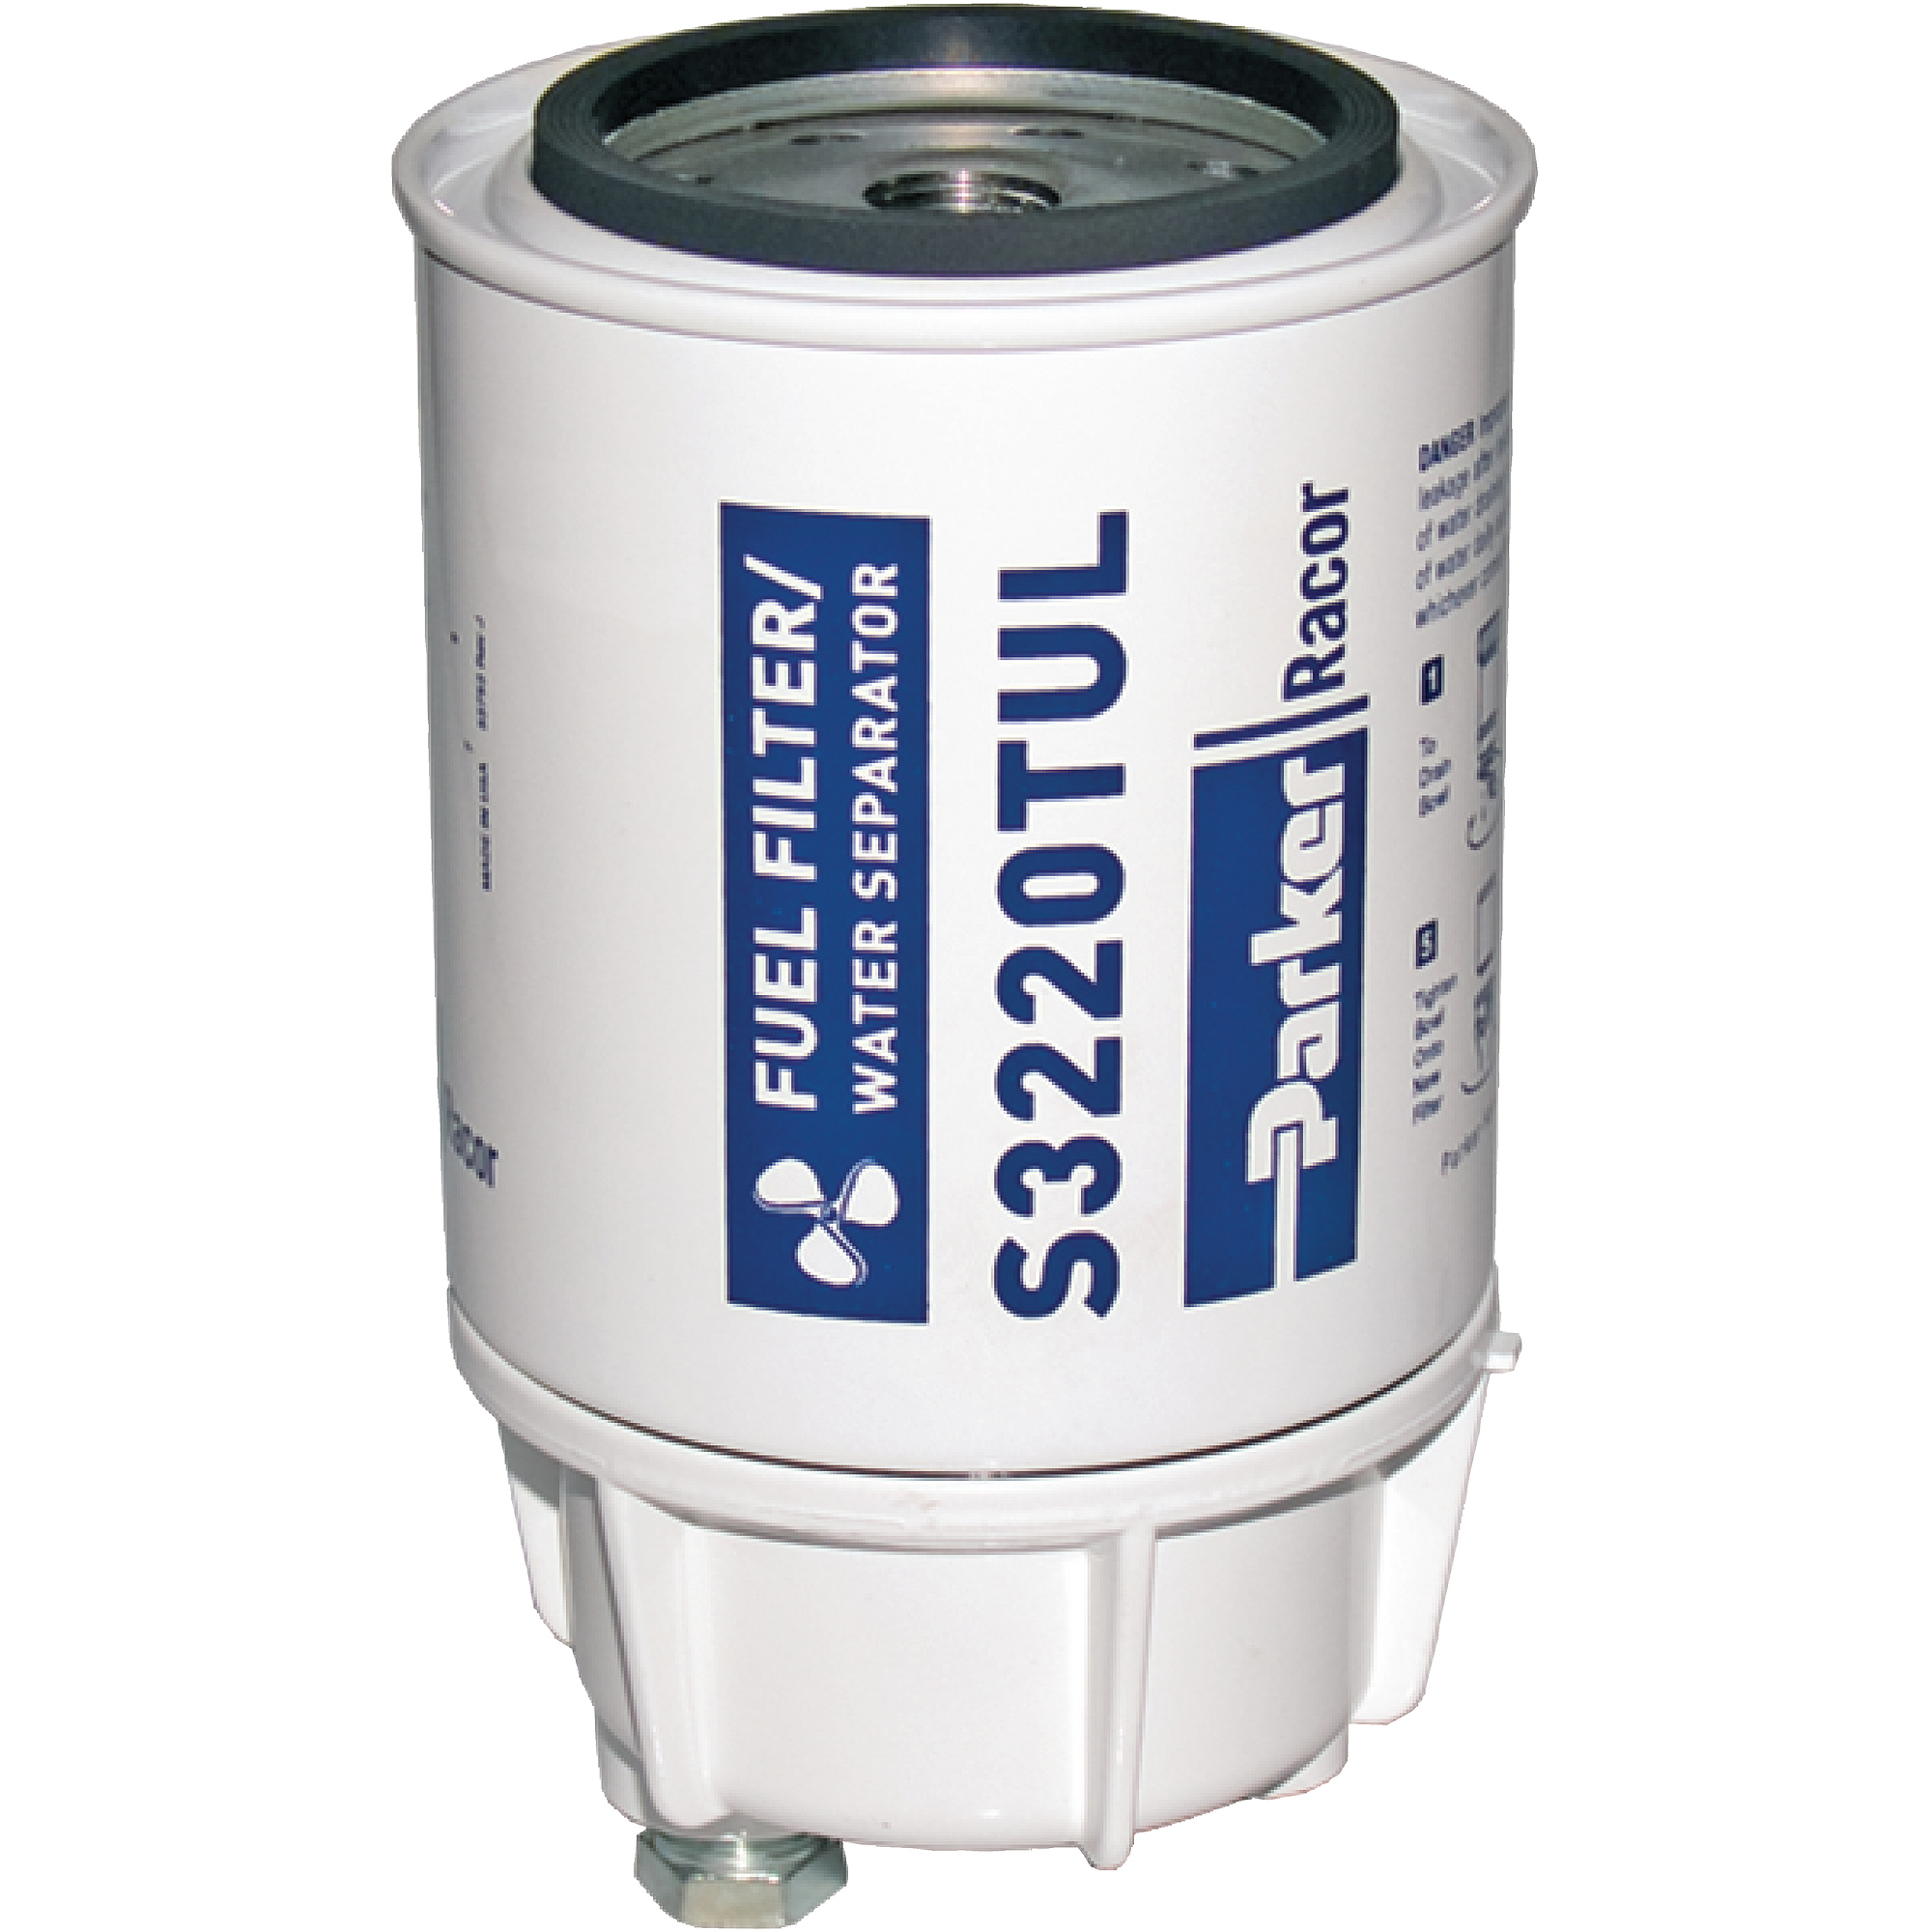 Racor 60 GPH Gas Inboard/Outboard Filter with Metal Bowl